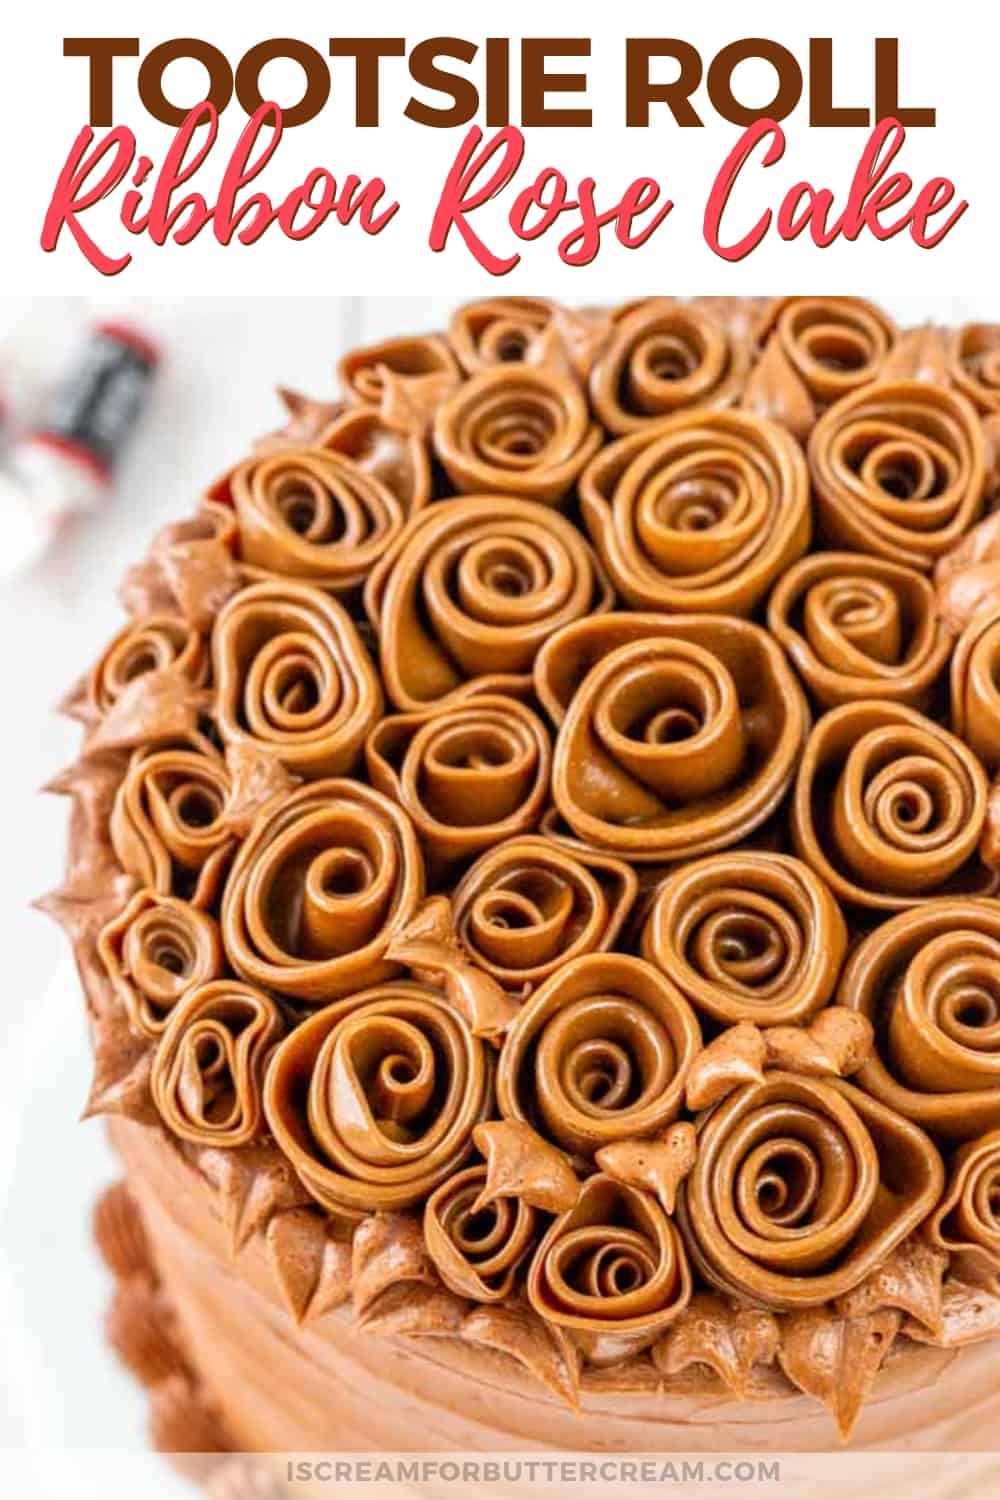 Tootsie Roll Ribbon Rose Cake New Pin Graphic 3